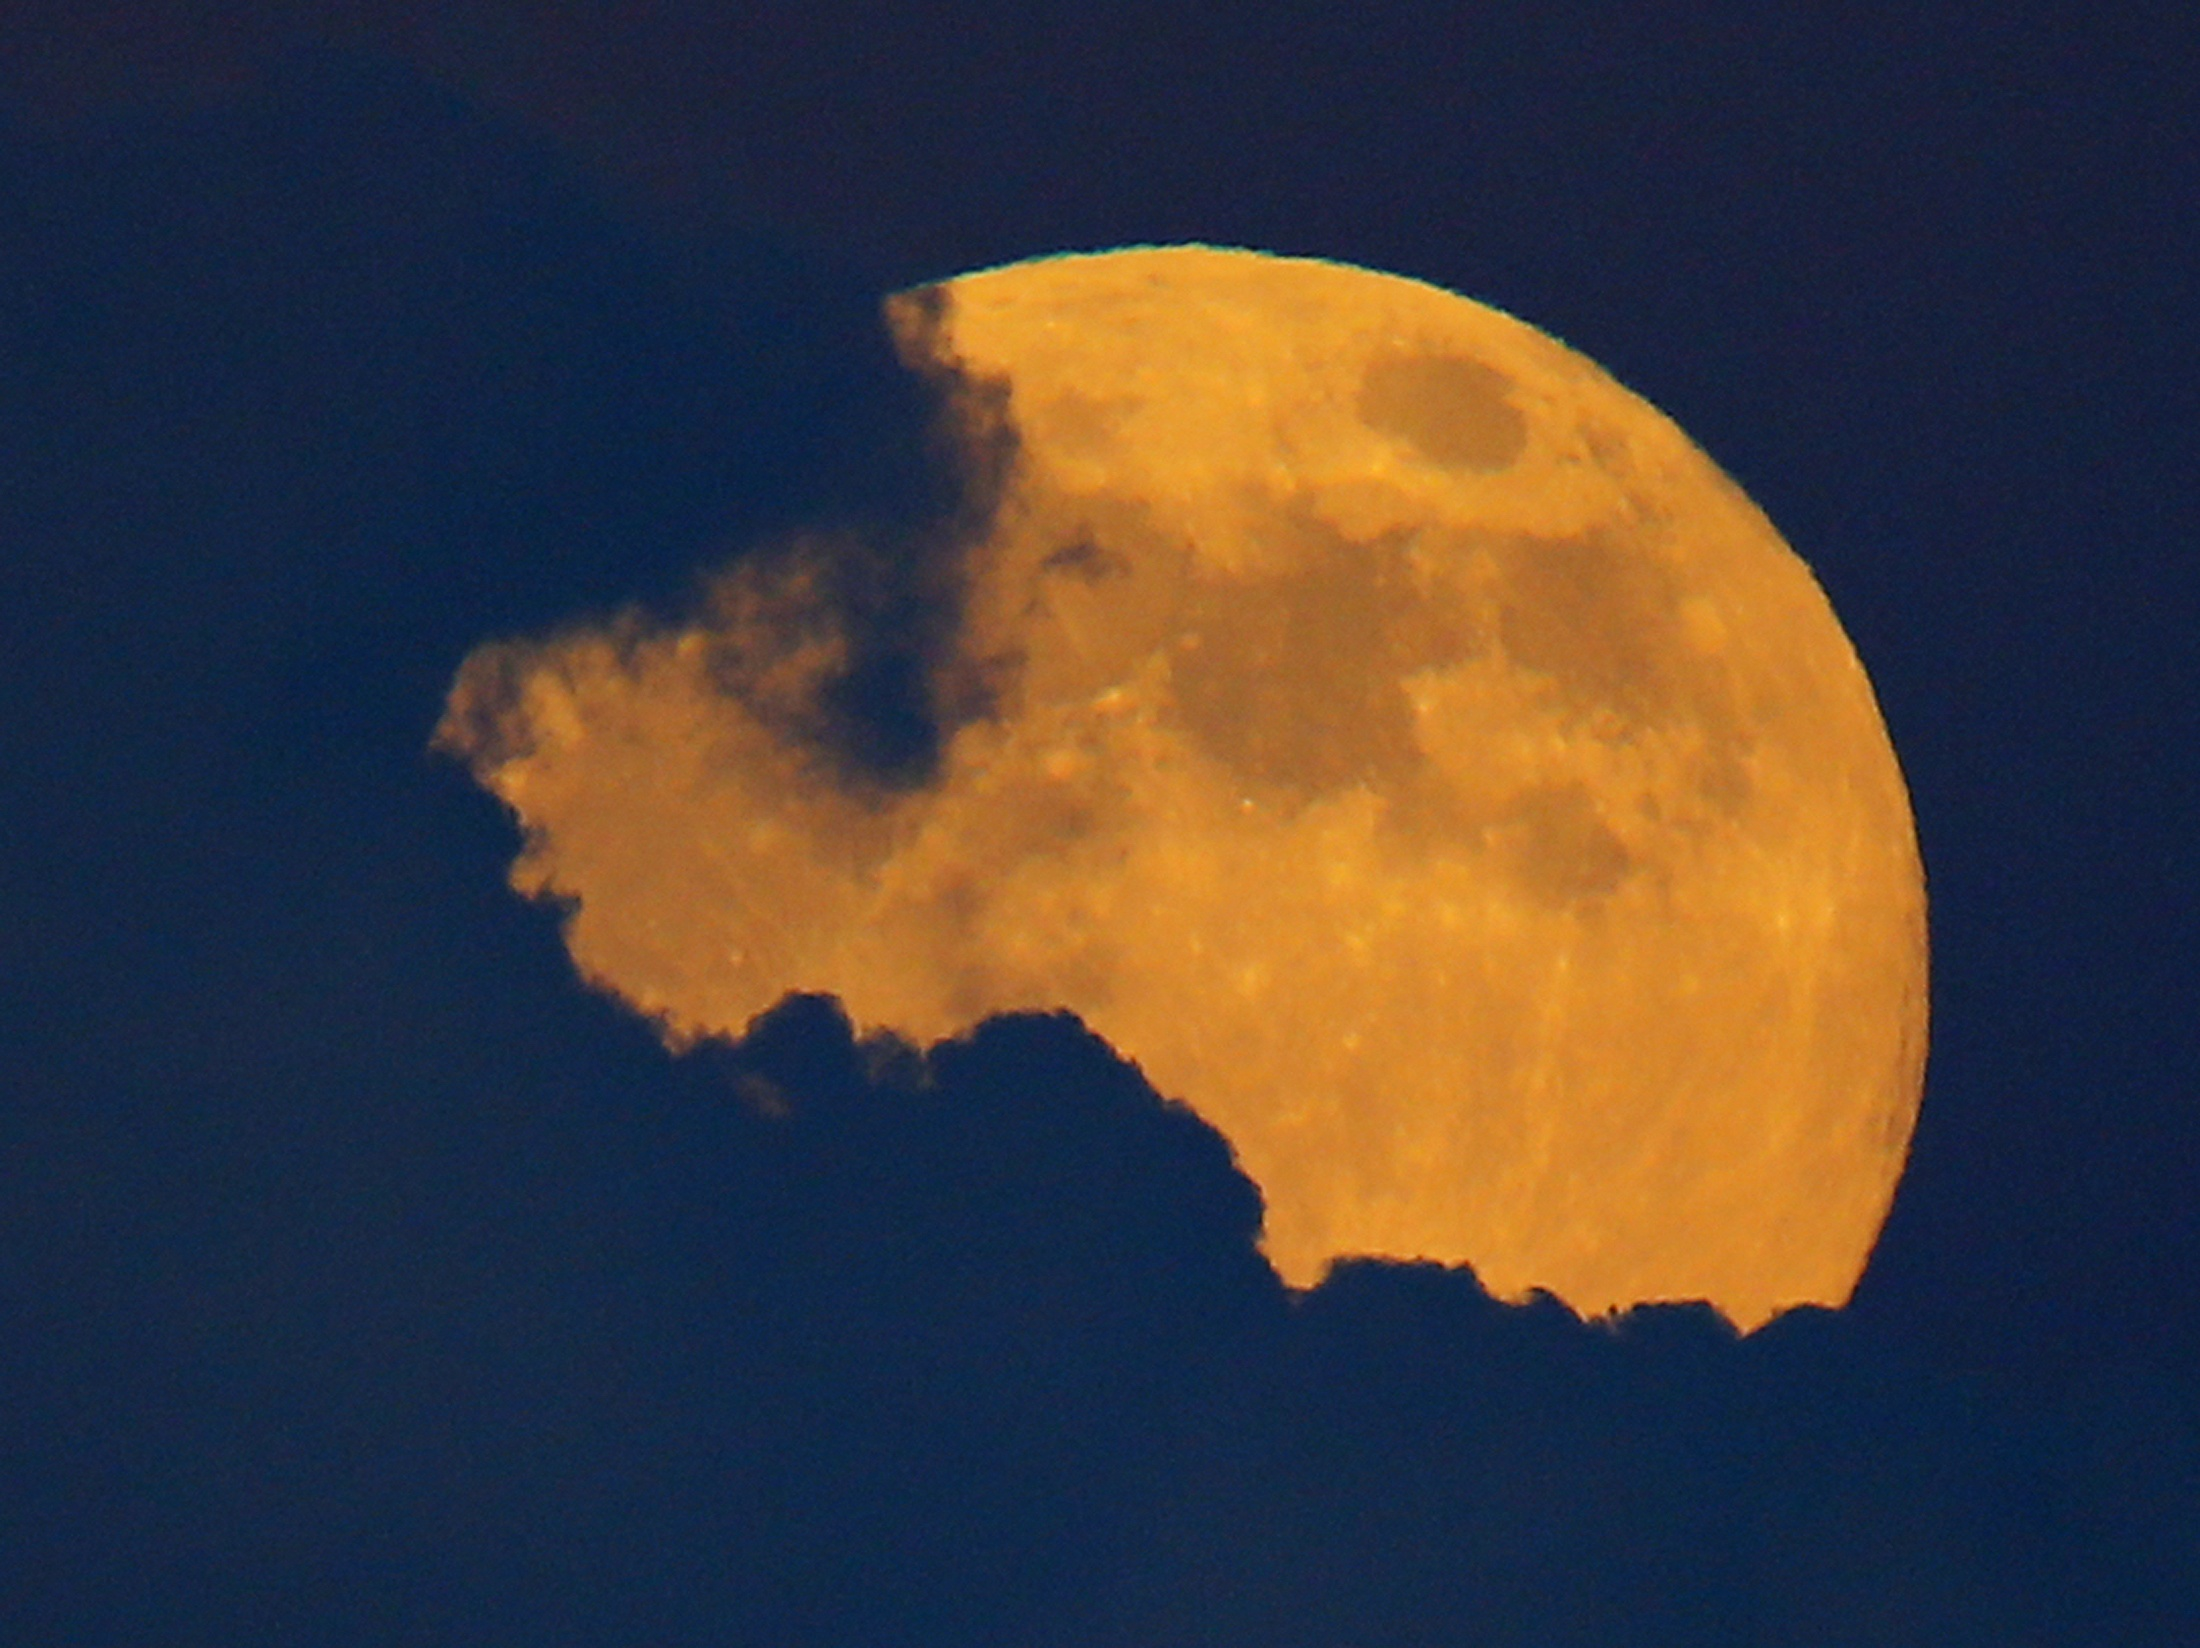 A full moon, also a harvest moon, rises past thunder clouds near Encinitas, California